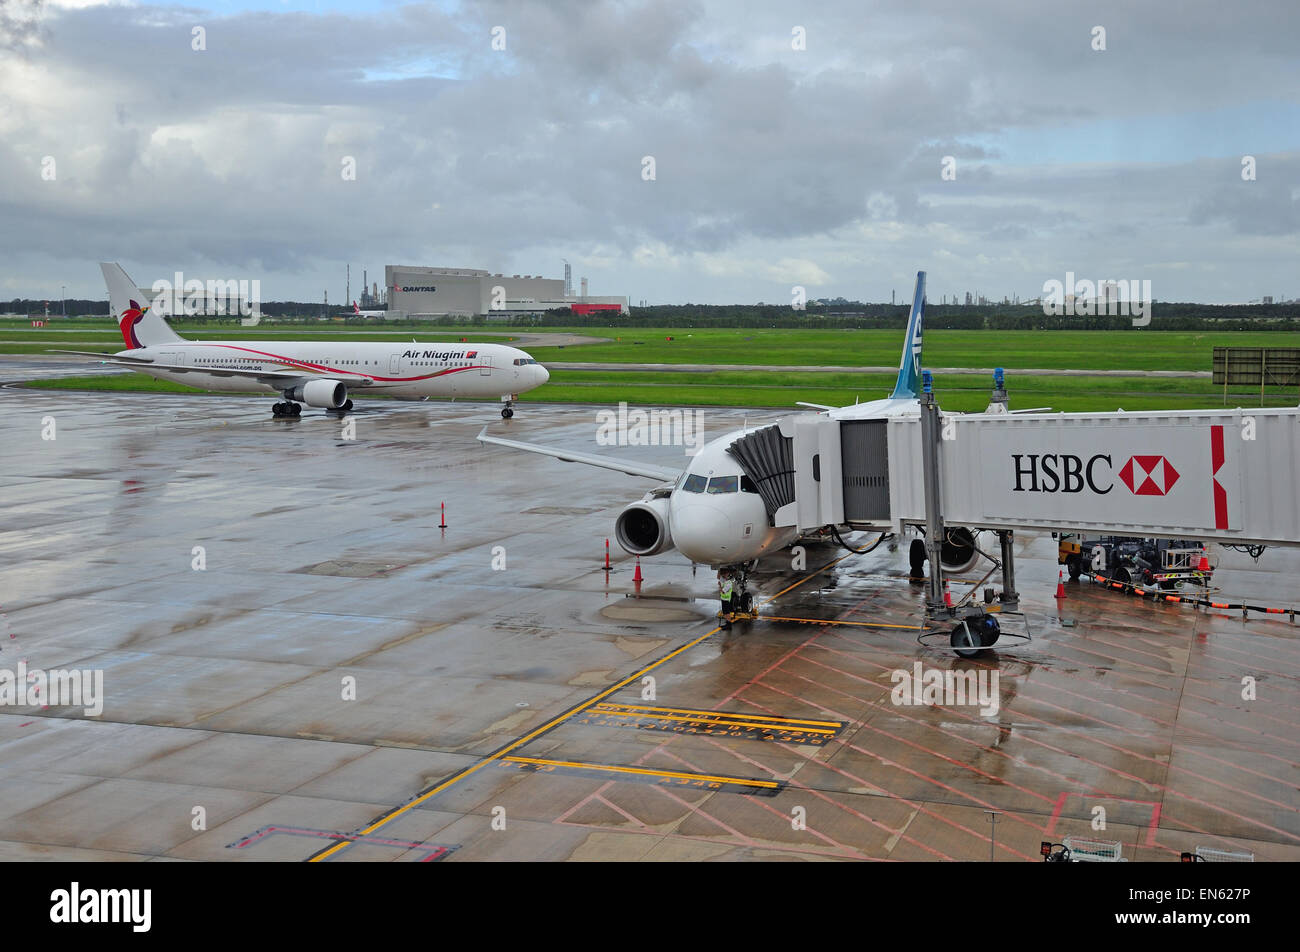 BRISBANE, AUSTRALIA: MARCH 8, 2013: commercial airliners on the tarmac on 8-3-2013 at Brisbane International Airport. - Stock Image